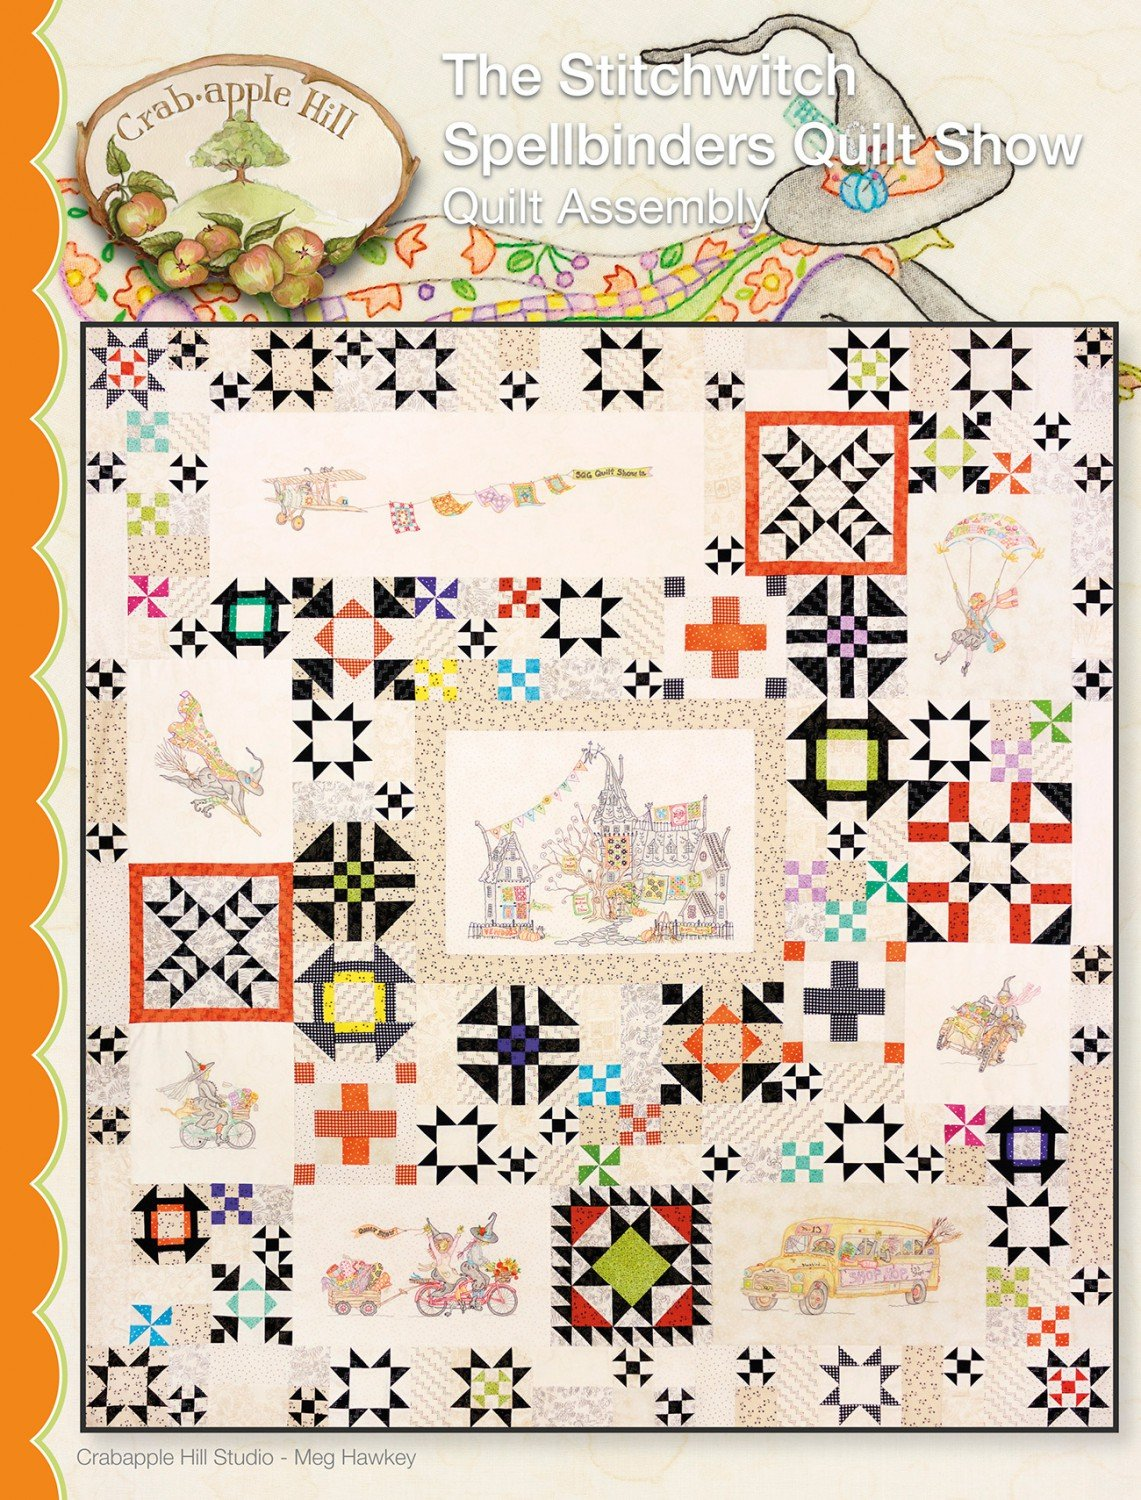 Spellbinders Stitchwitch Quilt - Complete Set